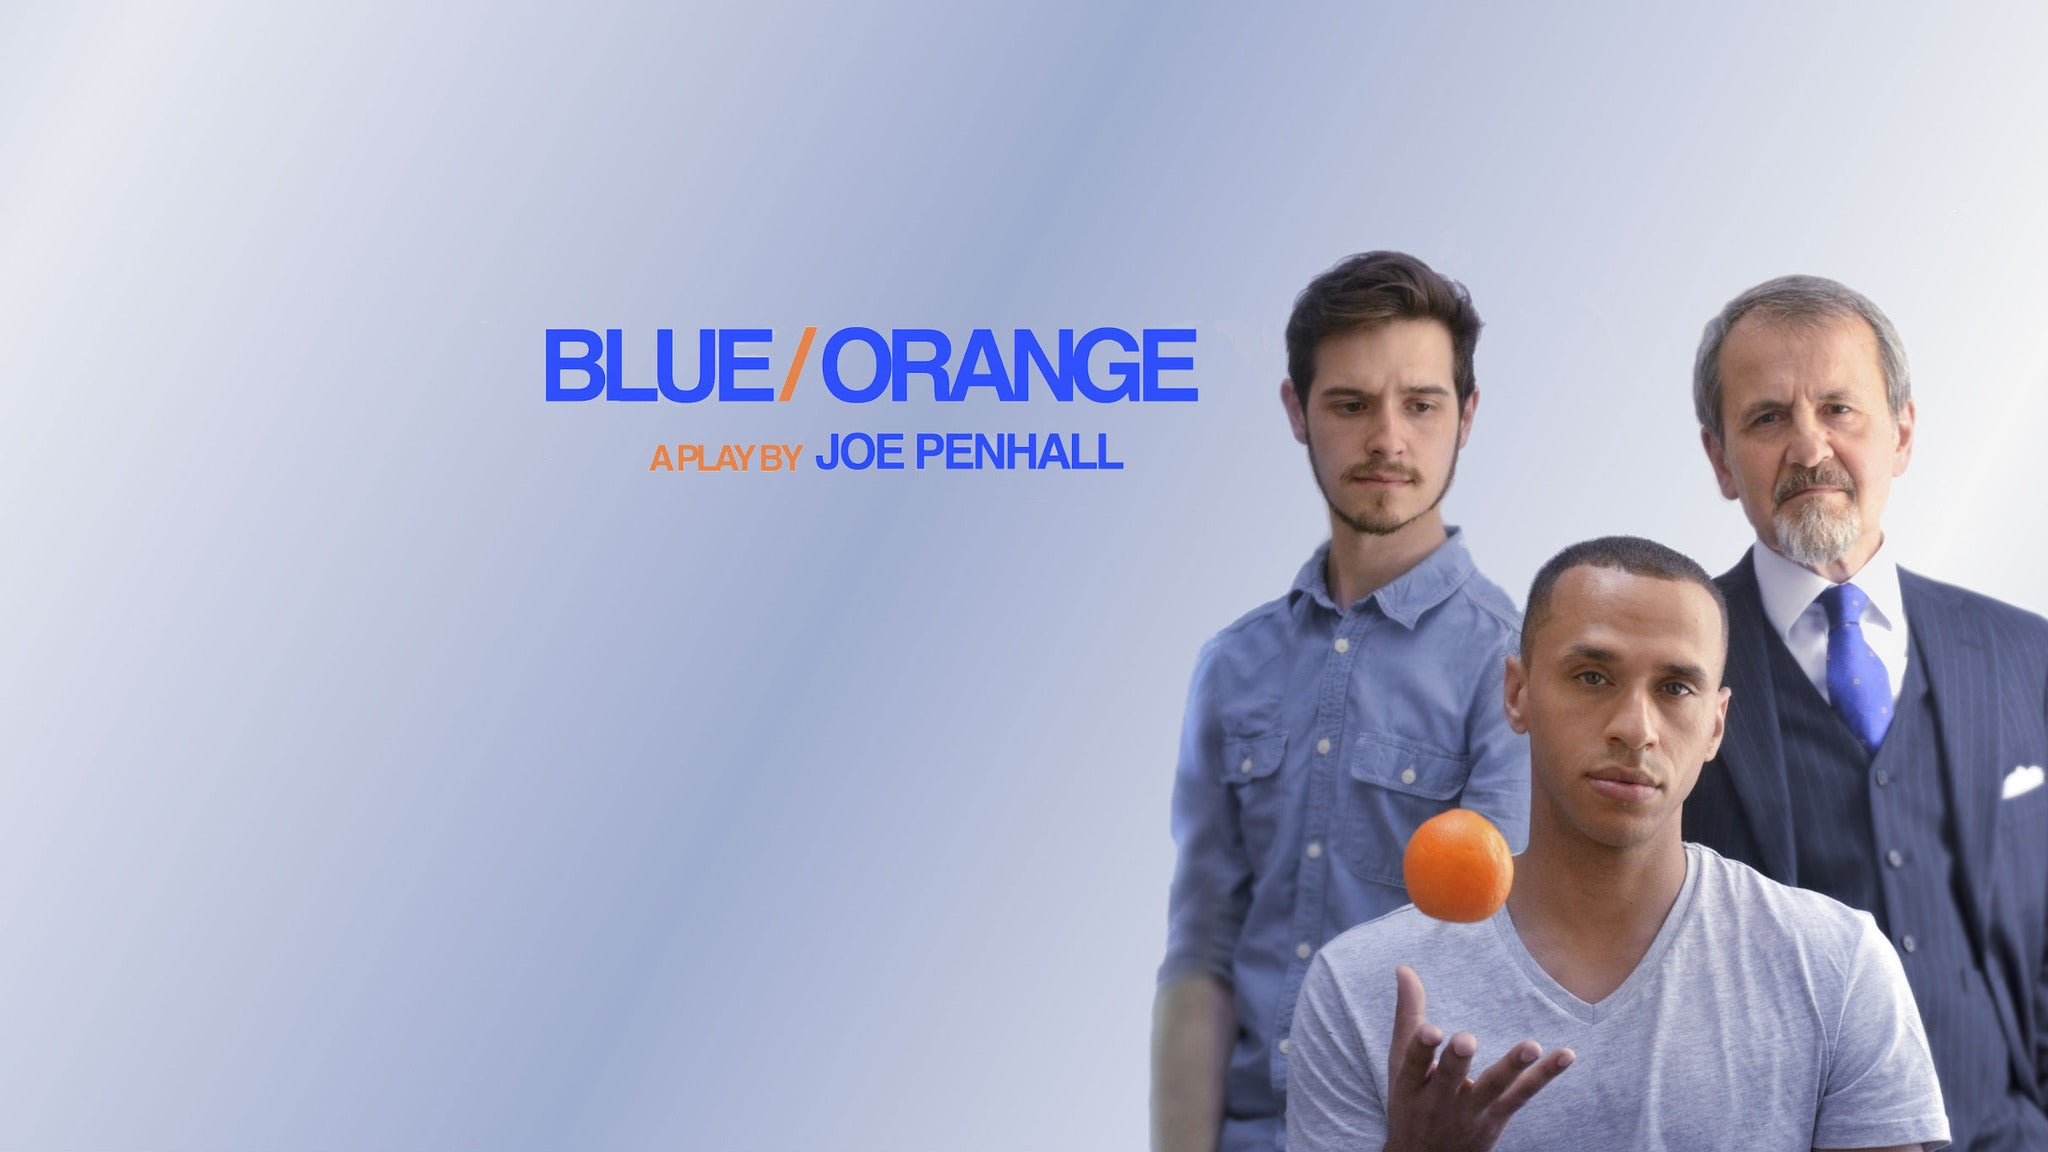 Blue/Orange at Royal George Theatre